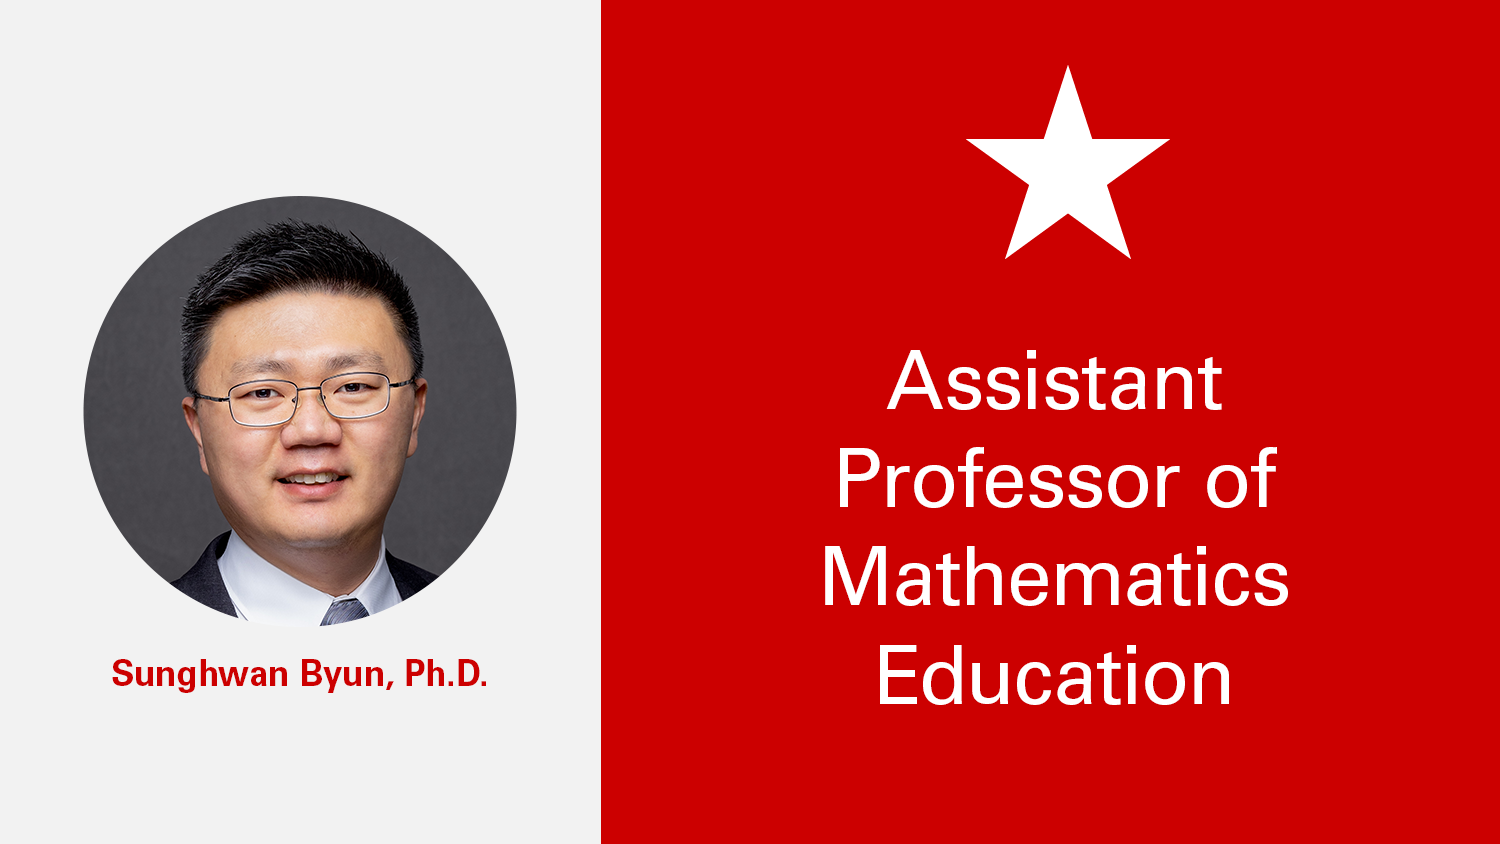 Assistant Professor Sunghwan Byun, Ph.D., shares why he chose a career in education, what his research interests are and why he chose the NC State College of Education.